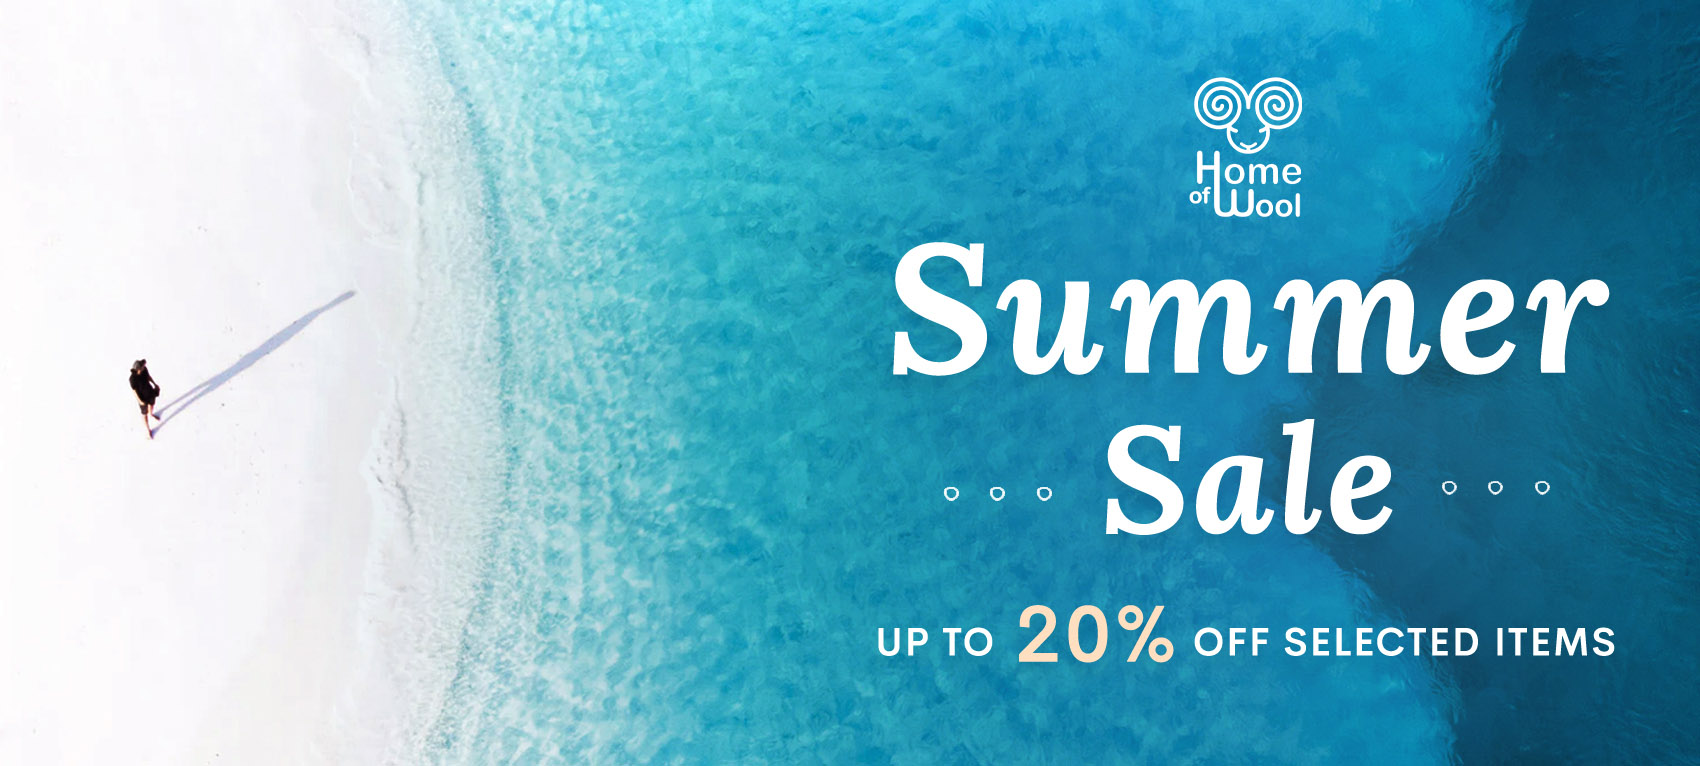 Home of Wool's summer sale